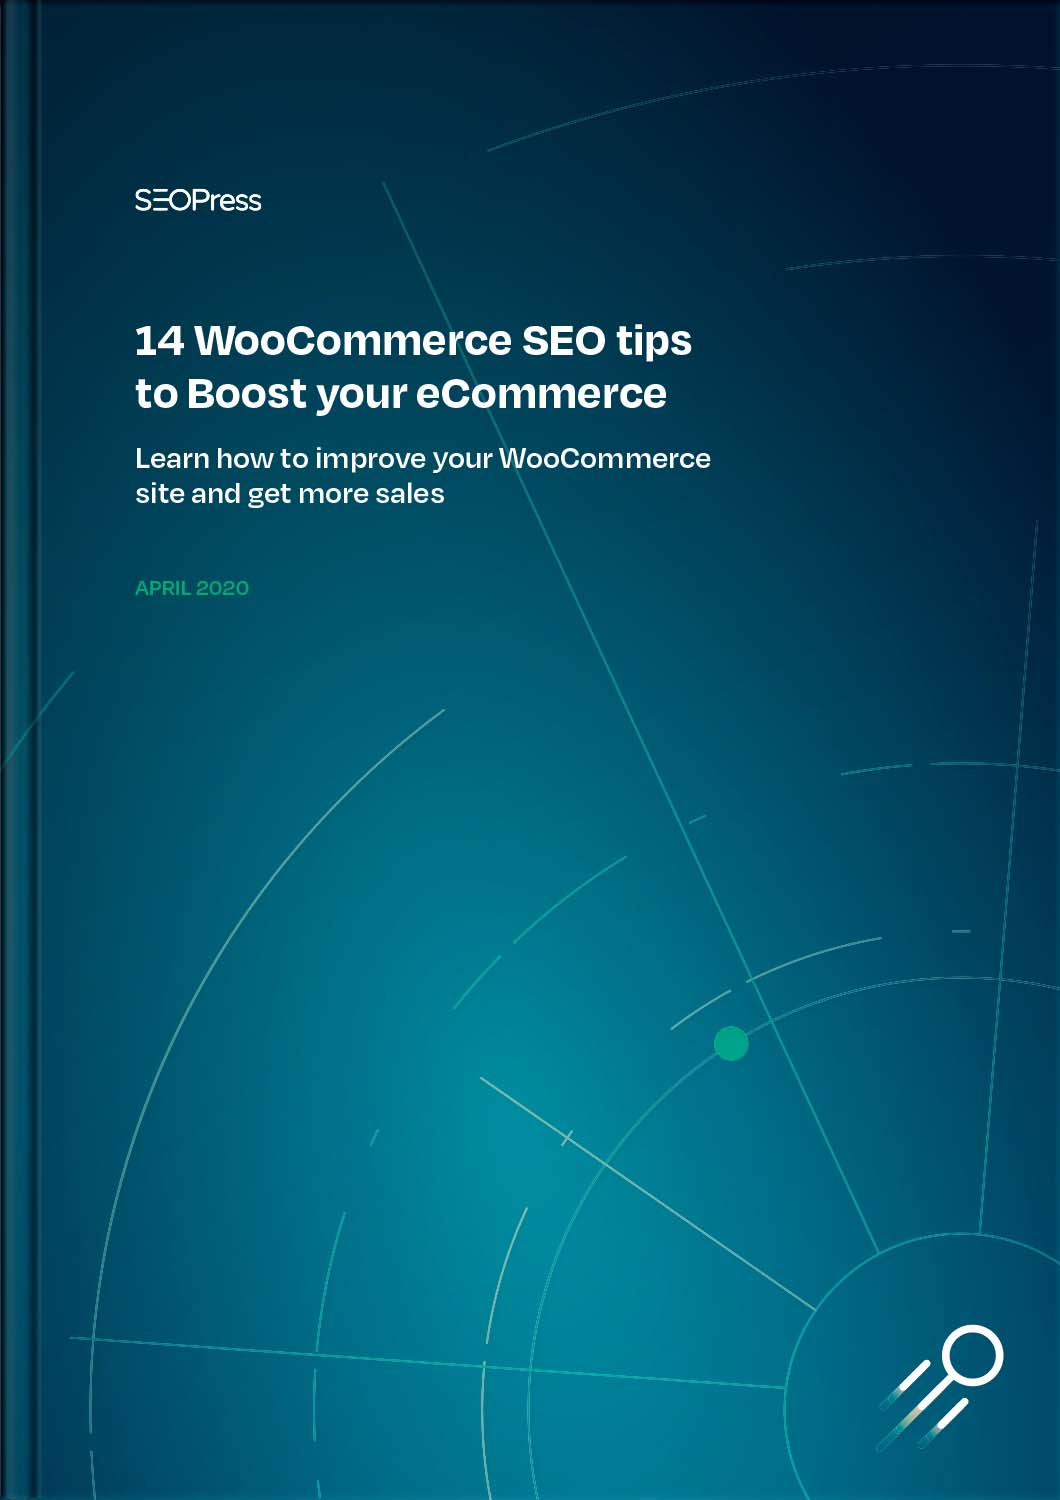 14 WooCommerce SEO tips to Boost your eCommerce